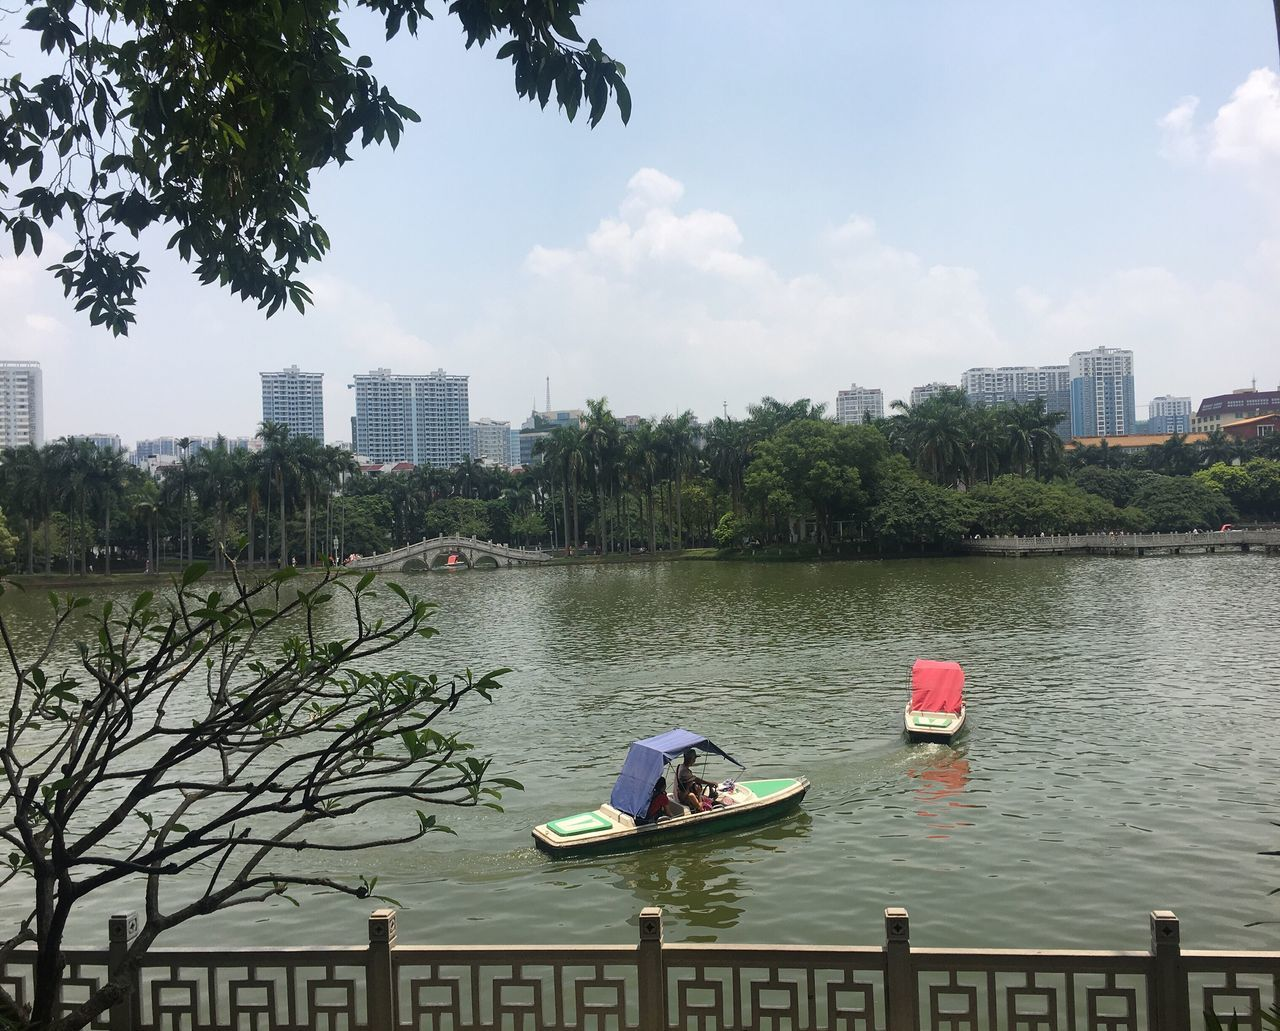 architecture, built structure, building exterior, tree, river, water, day, city, growth, sky, outdoors, skyscraper, cityscape, real people, nature, nautical vessel, urban skyline